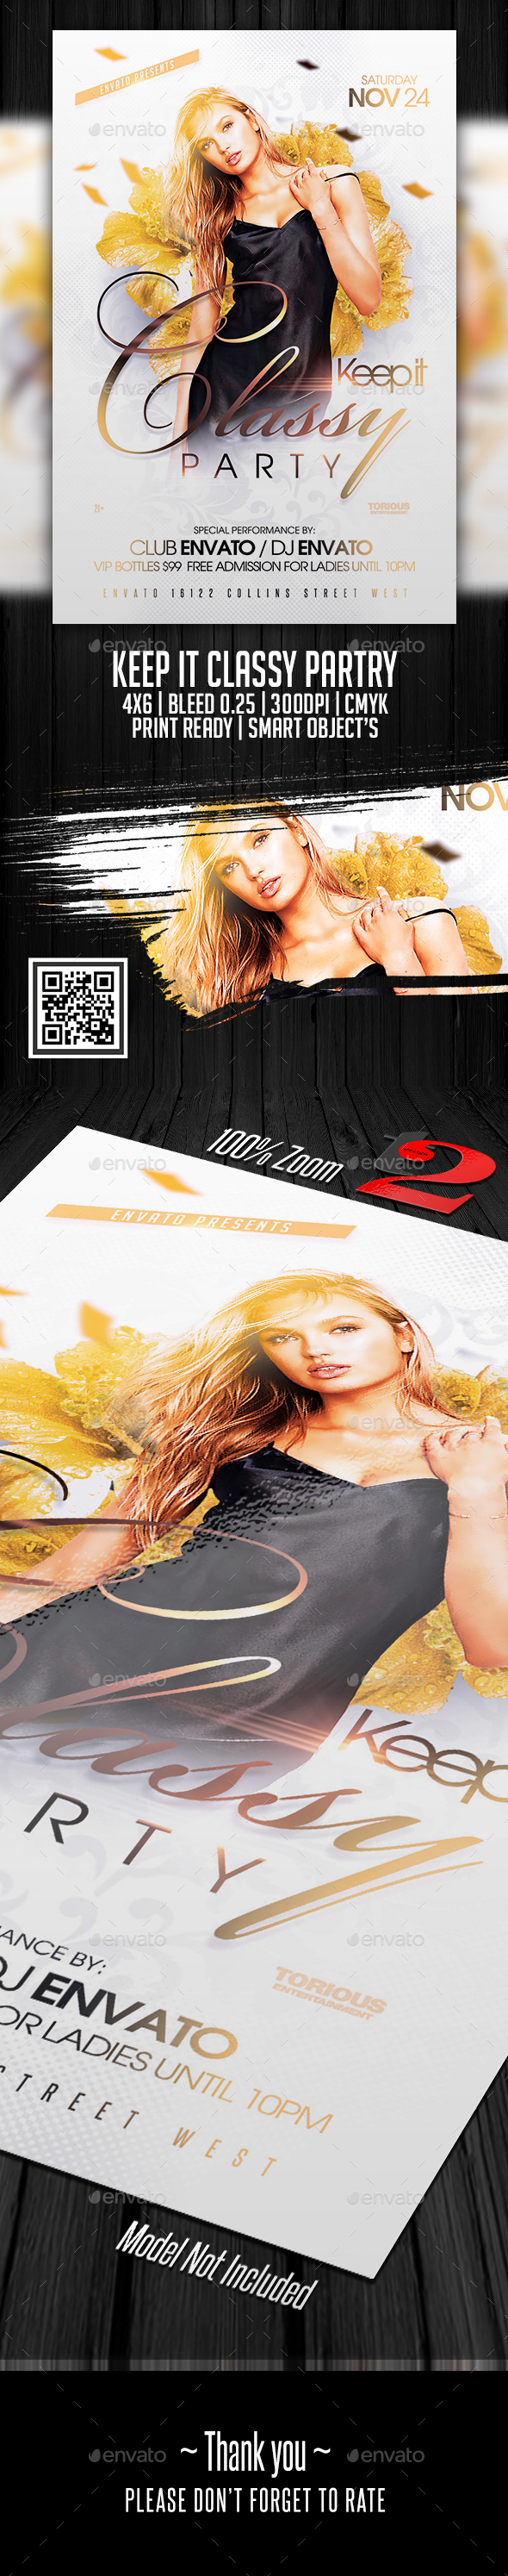 Keep It Classy Party Flyer Template - Clubs & Parties Events